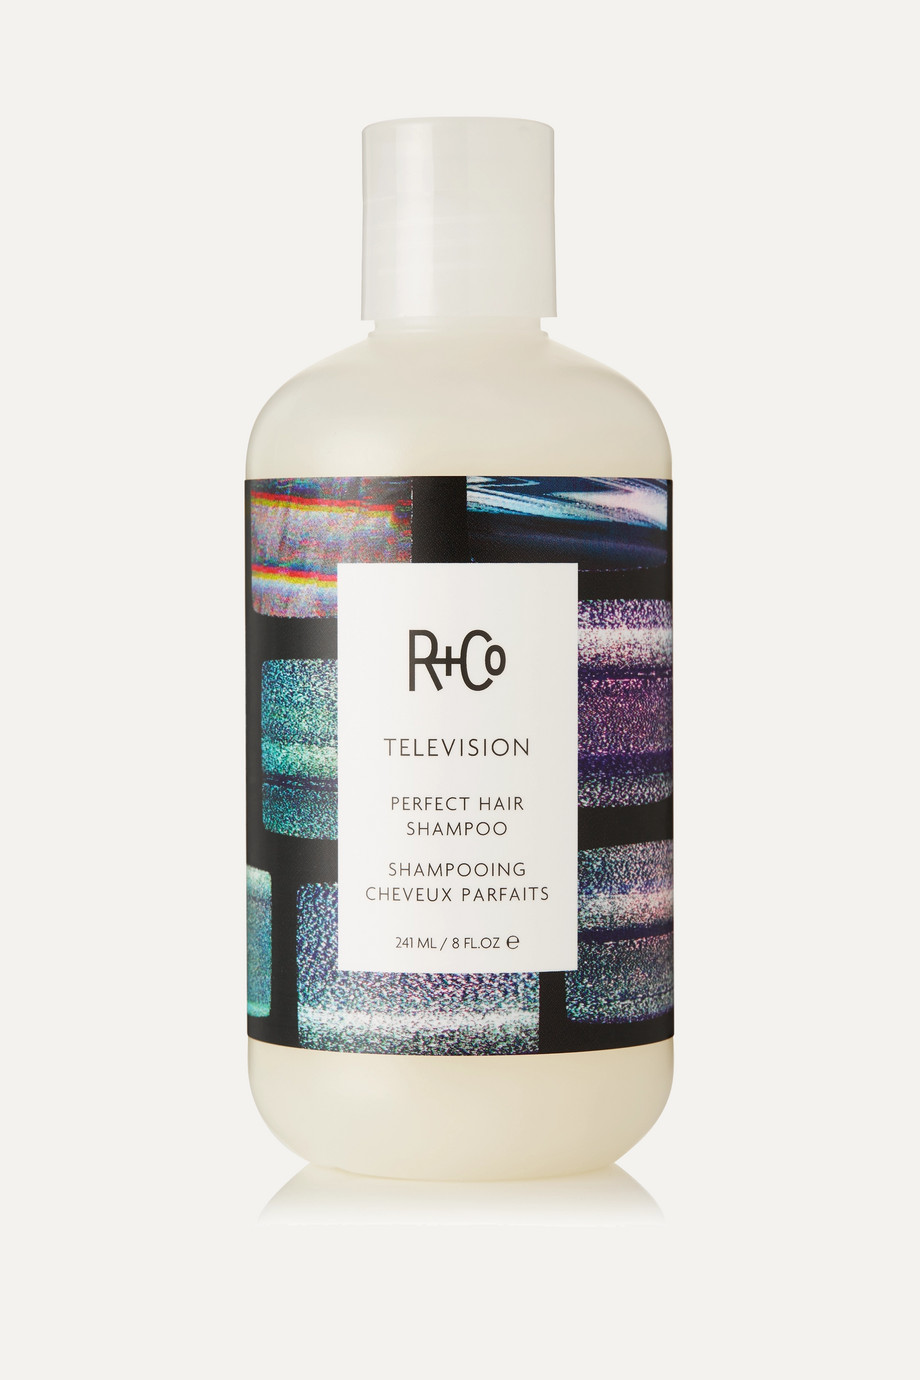 R+CO Television Perfect Hair Shampoo, 241ml